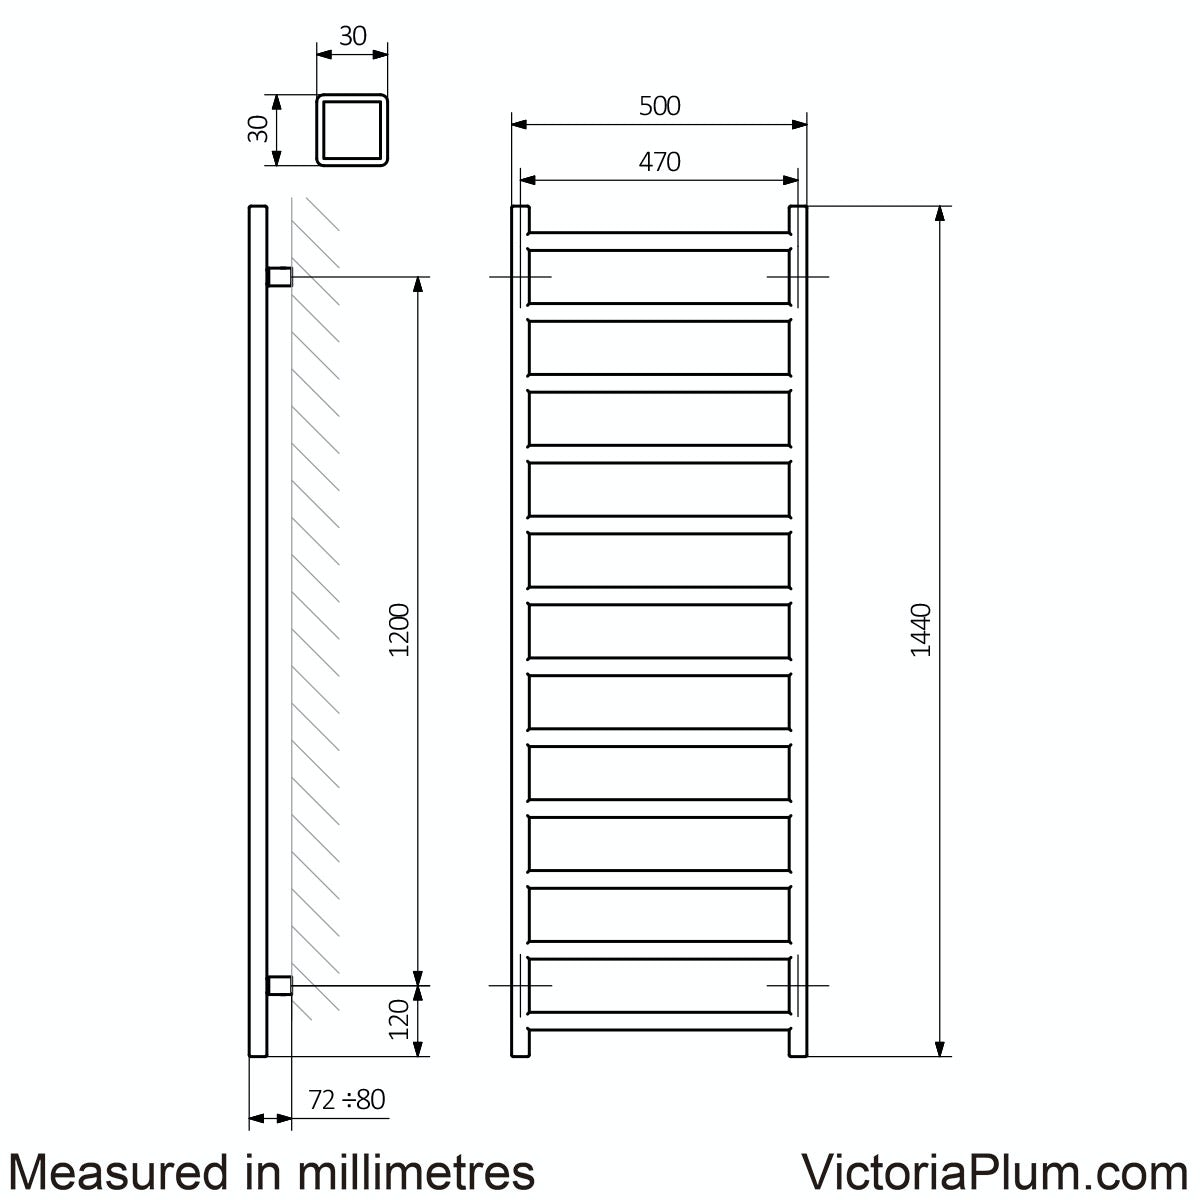 Dimensions for Terma Simple pigeon blue heated towel rail 1440 x 500